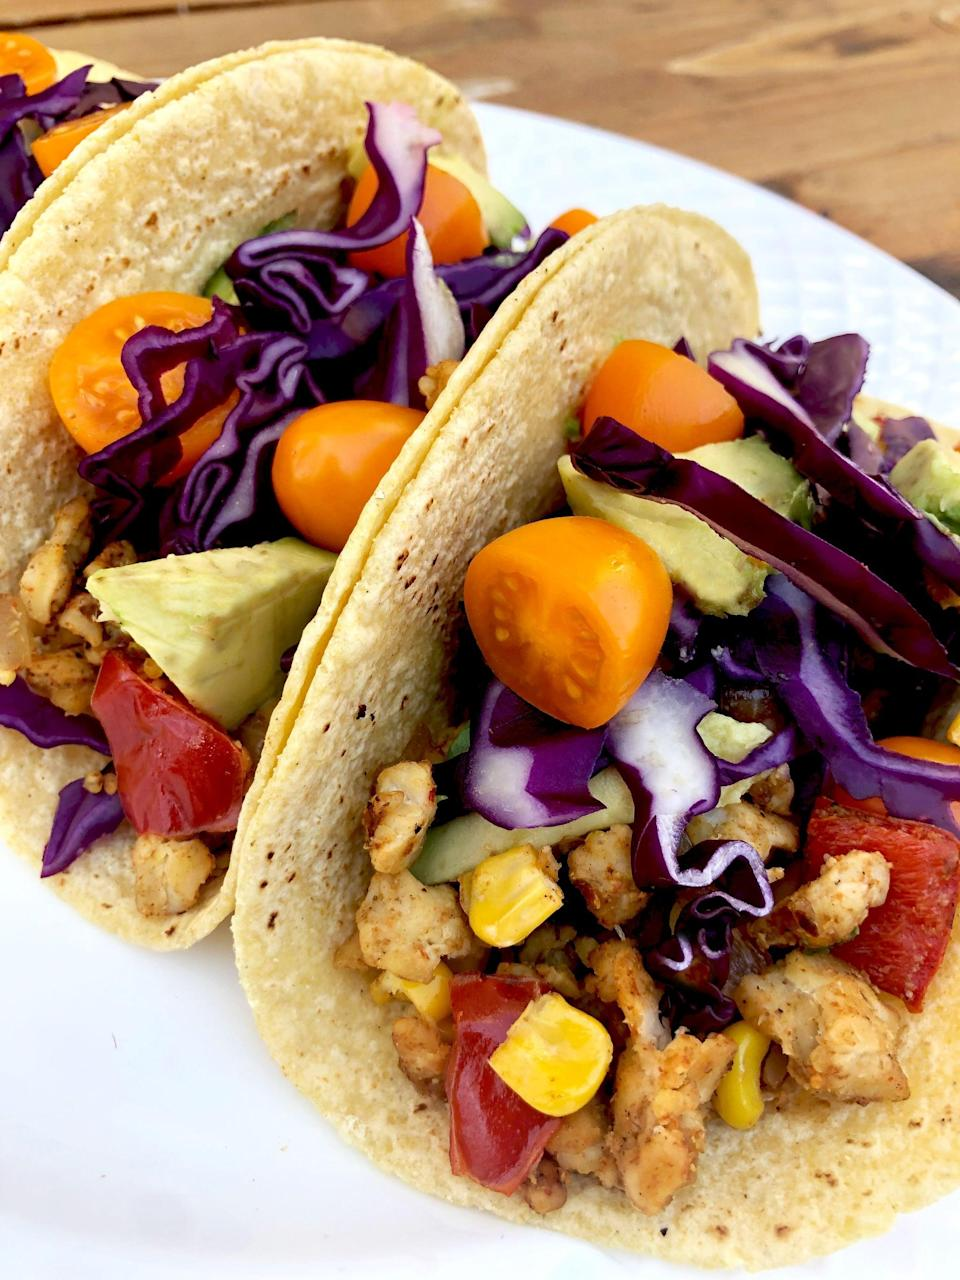 """<p>These tempeh tacos are so easy to make and so satisfying, you'll wish it was Taco Tuesday every night. The filling is made with crumbled tempeh, sautéed onions, red peppers, and corn. It's perfectly soft and tender, and slightly spicy - even meat eaters will be instant fans! </p> <p><strong>Get the recipe:</strong> <a href=""""https://www.popsugar.com/fitness/Tempeh-Taco-Recipe-45938997"""" class=""""link rapid-noclick-resp"""" rel=""""nofollow noopener"""" target=""""_blank"""" data-ylk=""""slk:tempeh tacos"""">tempeh tacos</a></p>"""